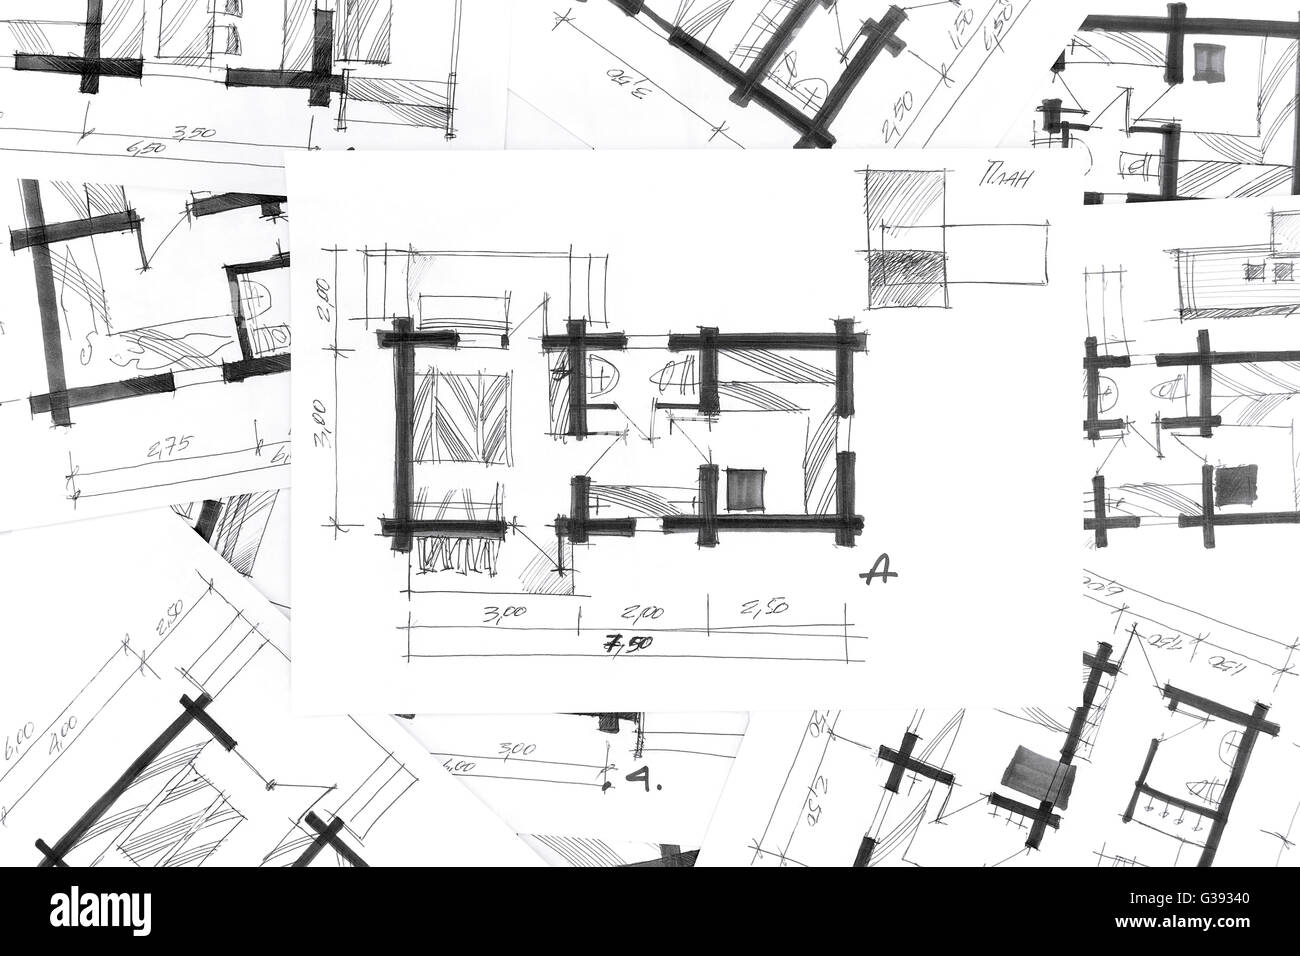 Sketch drawings for new home renovation architectural for Renovation drawings